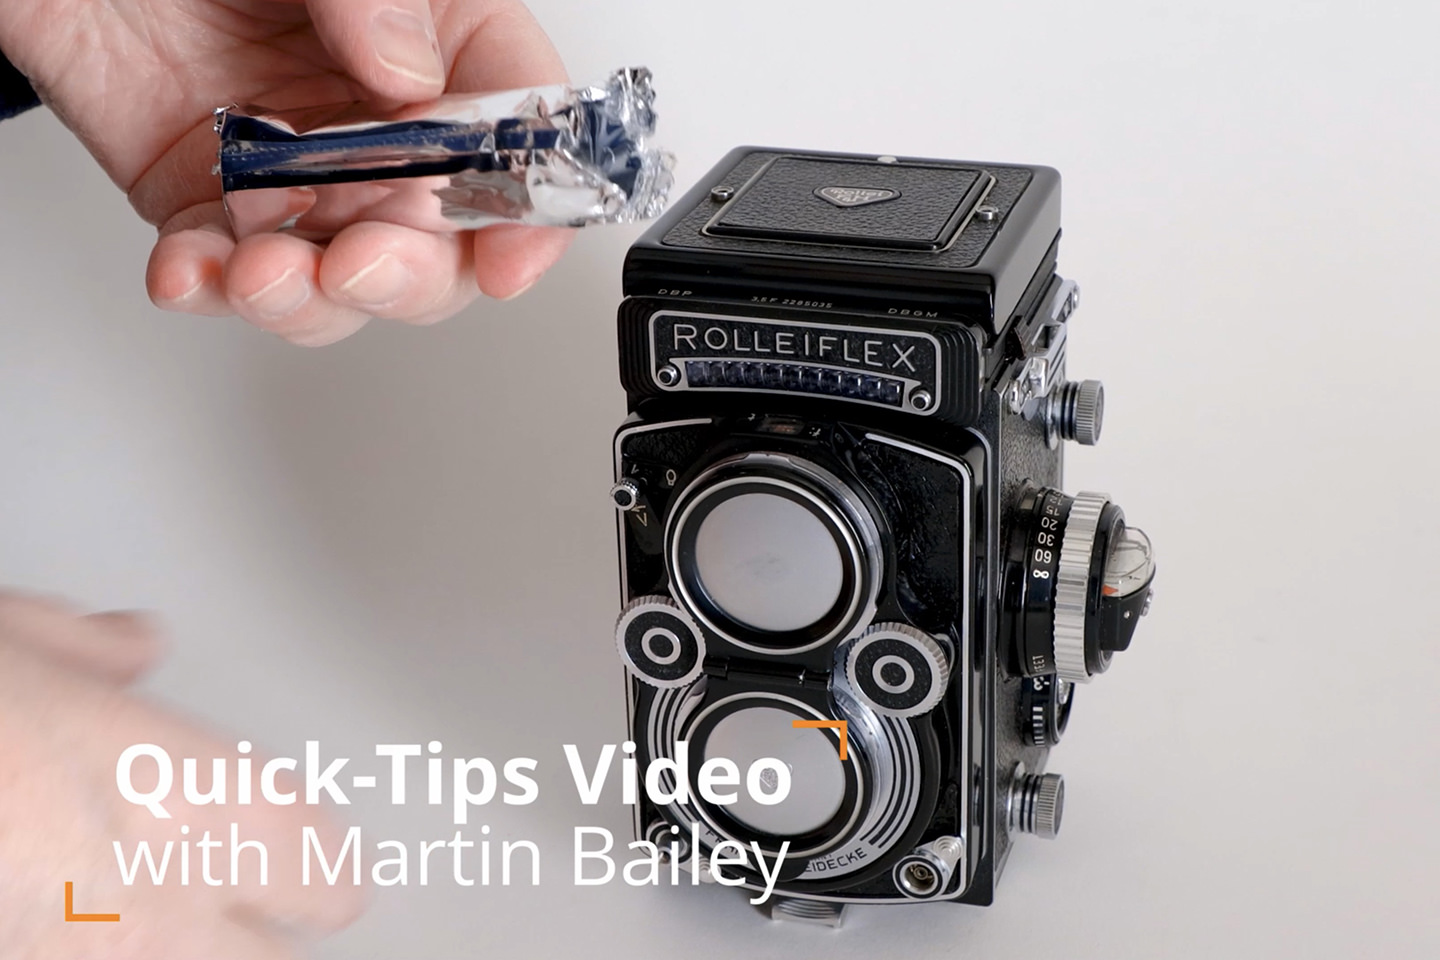 Loading Film to the Rolleiflex